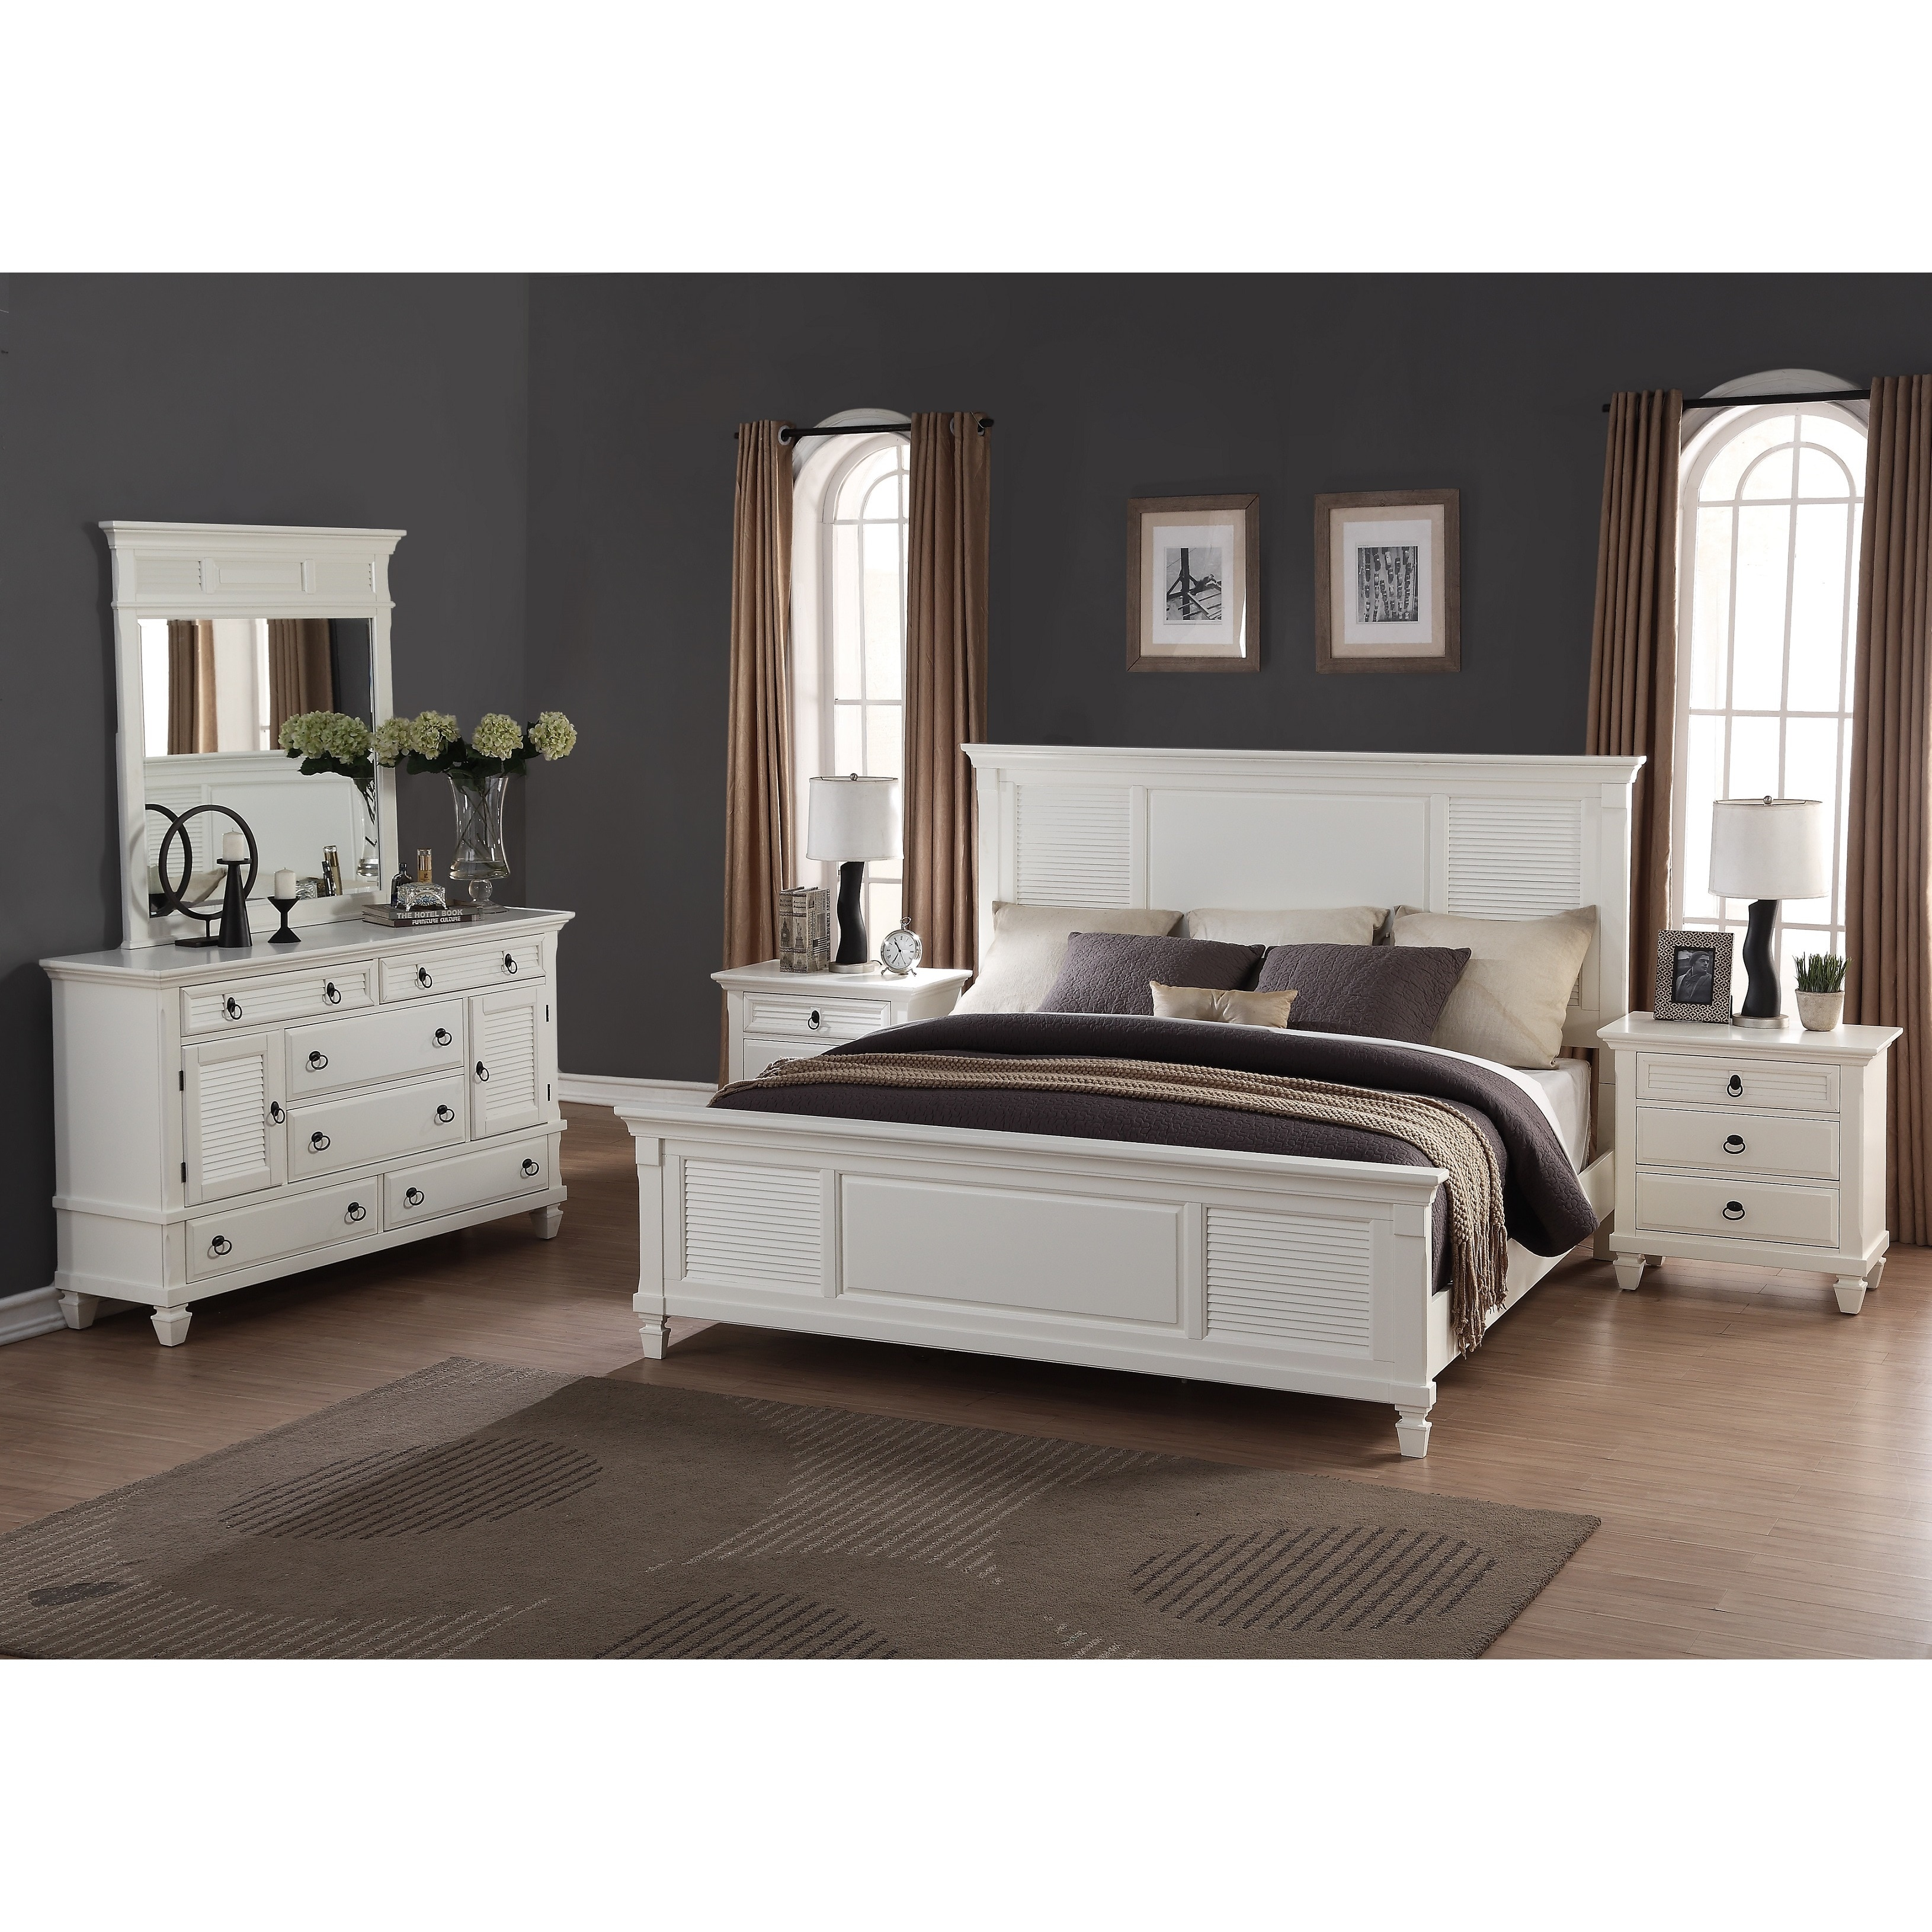 Regitina White 8-Piece King-size Bedroom Furniture Set